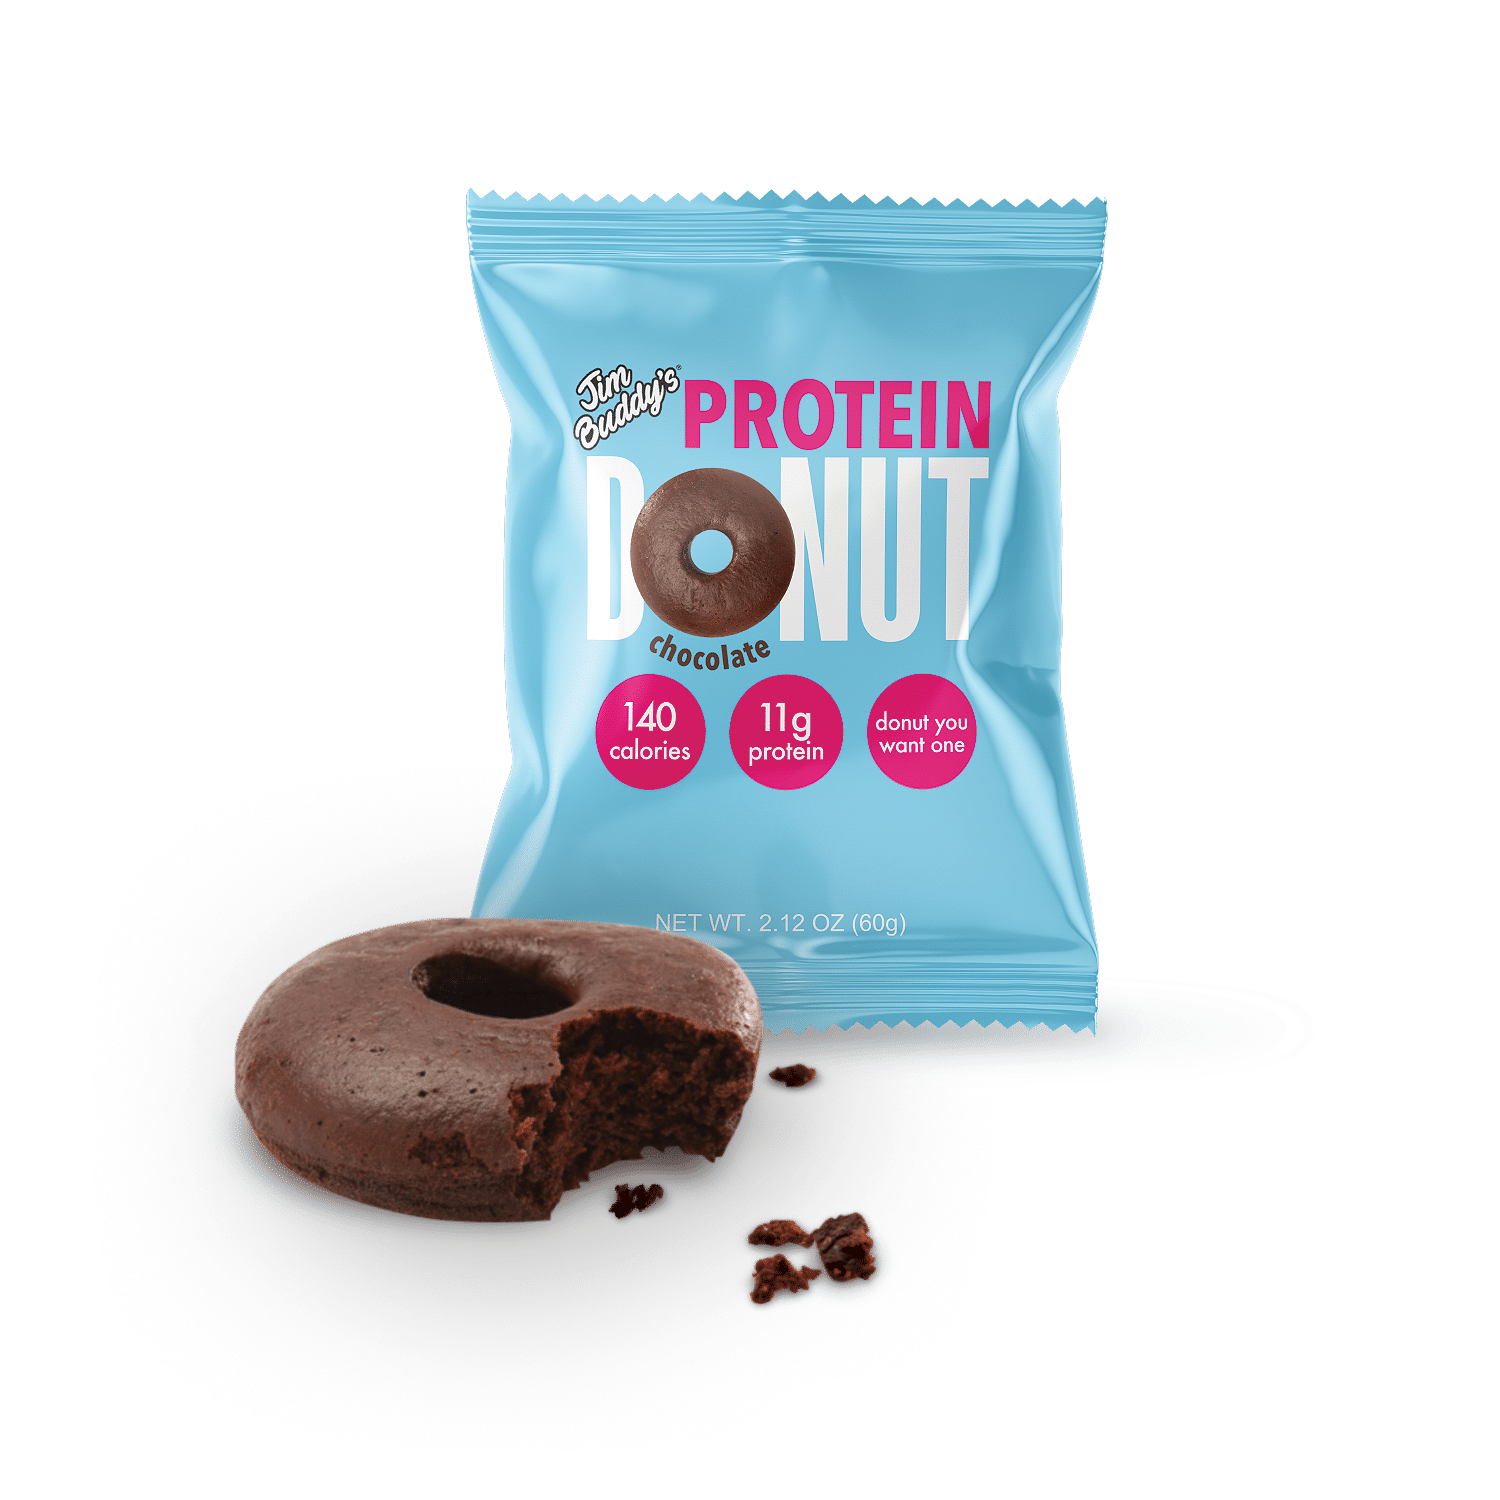 Jim Buddy's Protein Donuts Launches in US, Hires Ex-Quest Nutrition Veteran to Lead Sales Team